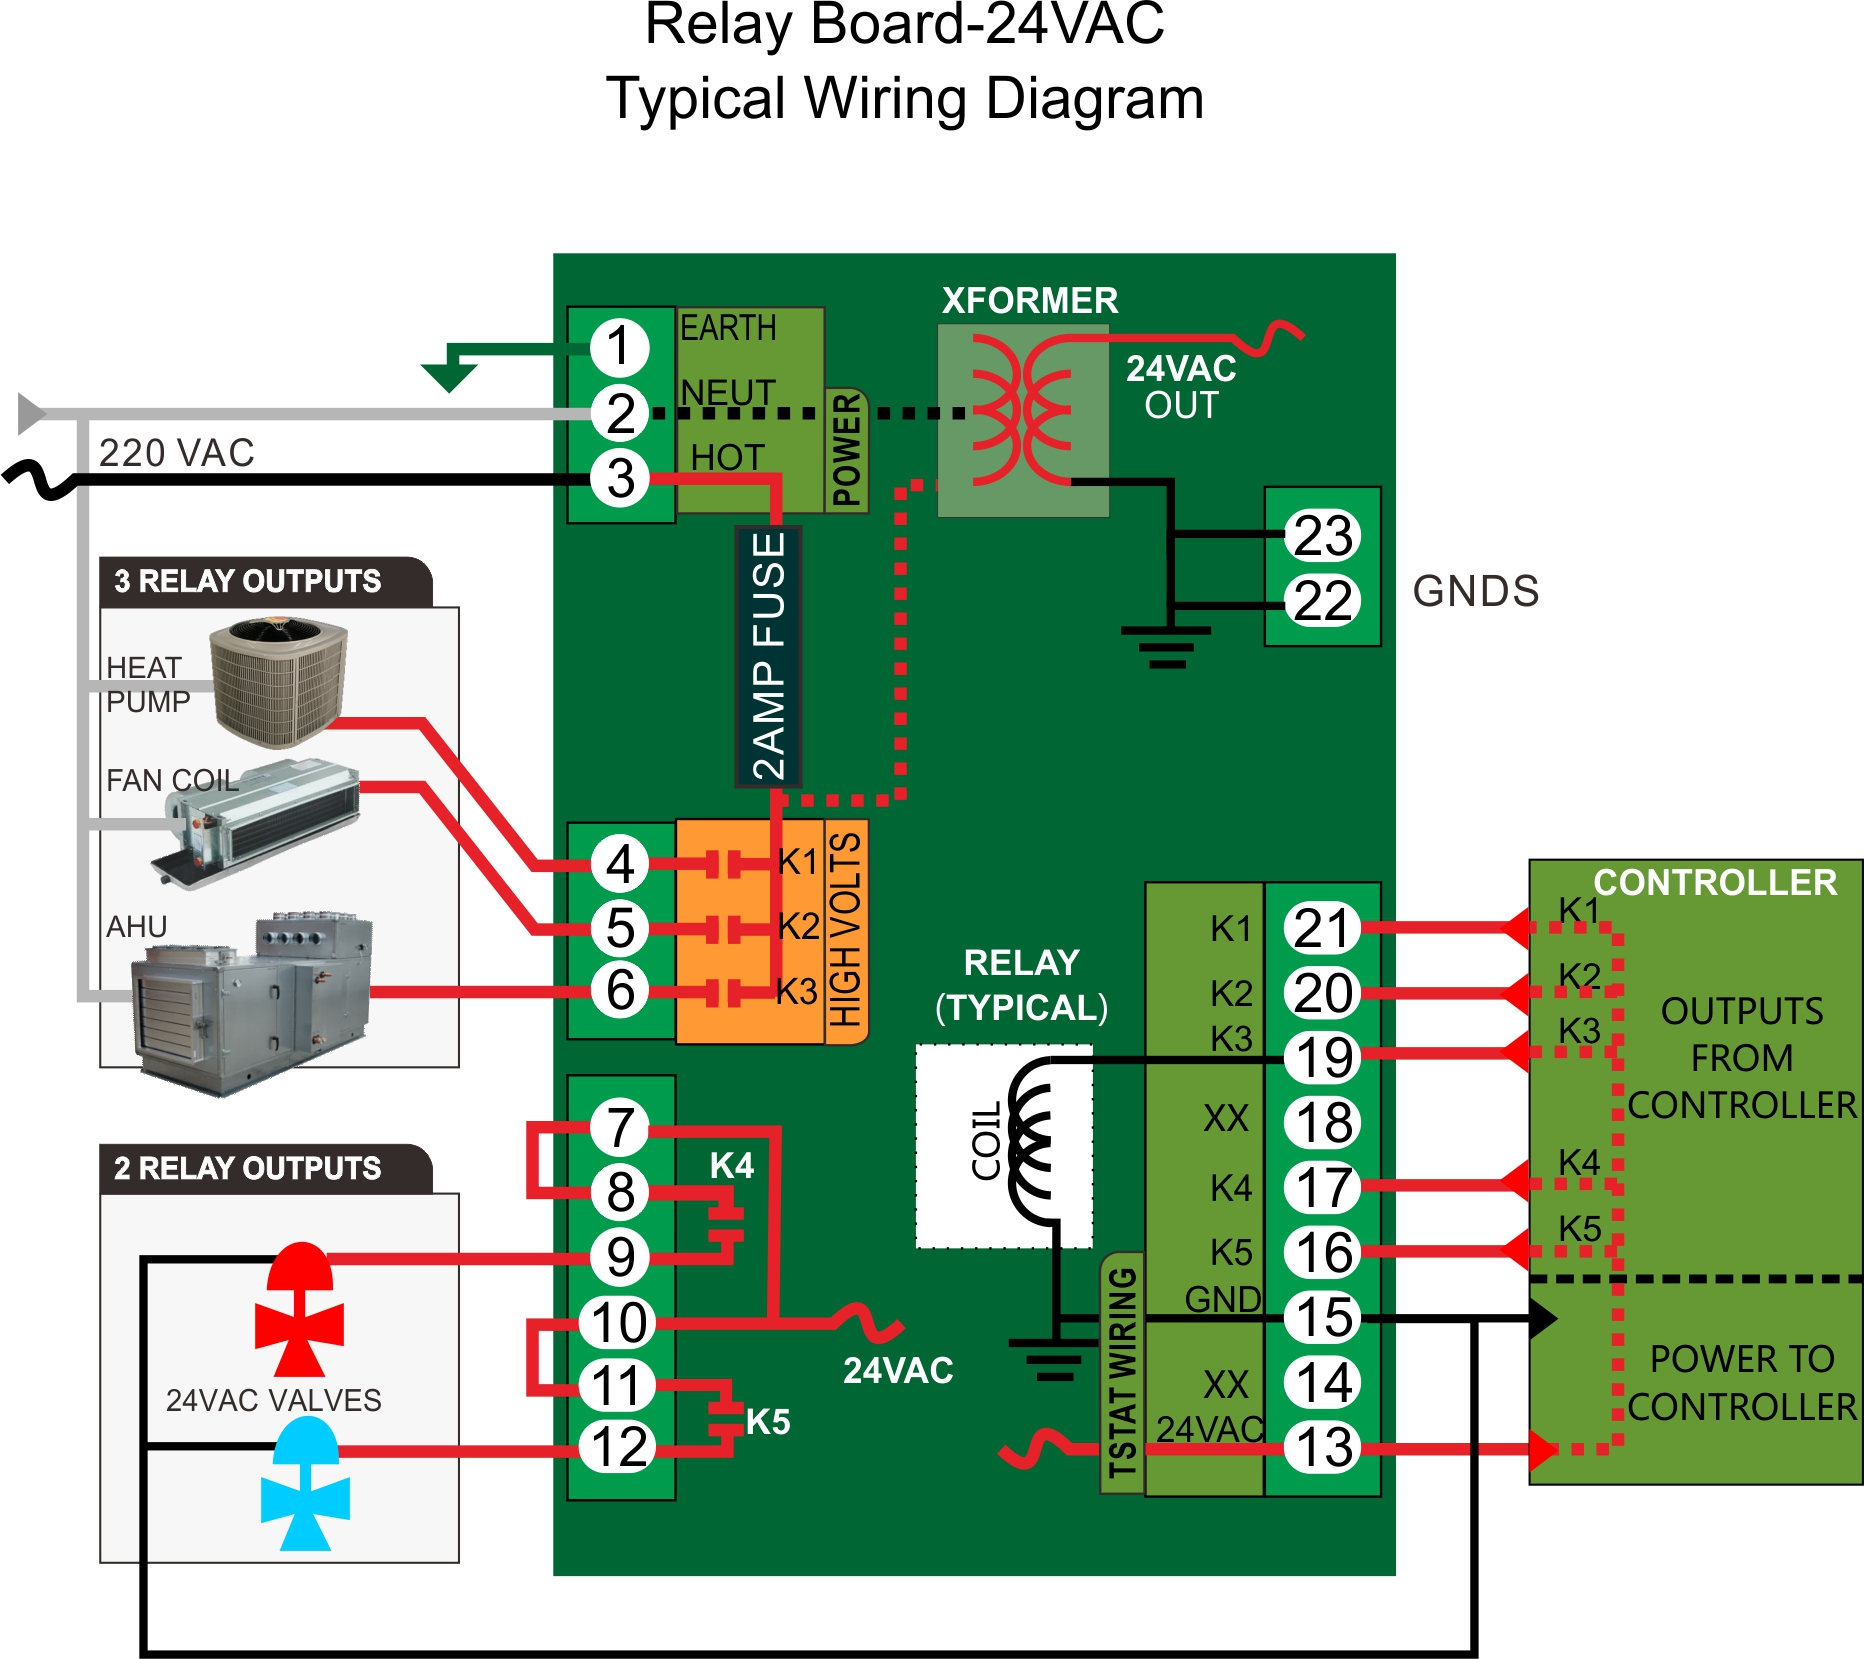 hight resolution of 24vac relay wiring diagram 11 pin relay base wiring 4 pin relay wiring diagram omron my2n 24vac relay wiring diagram